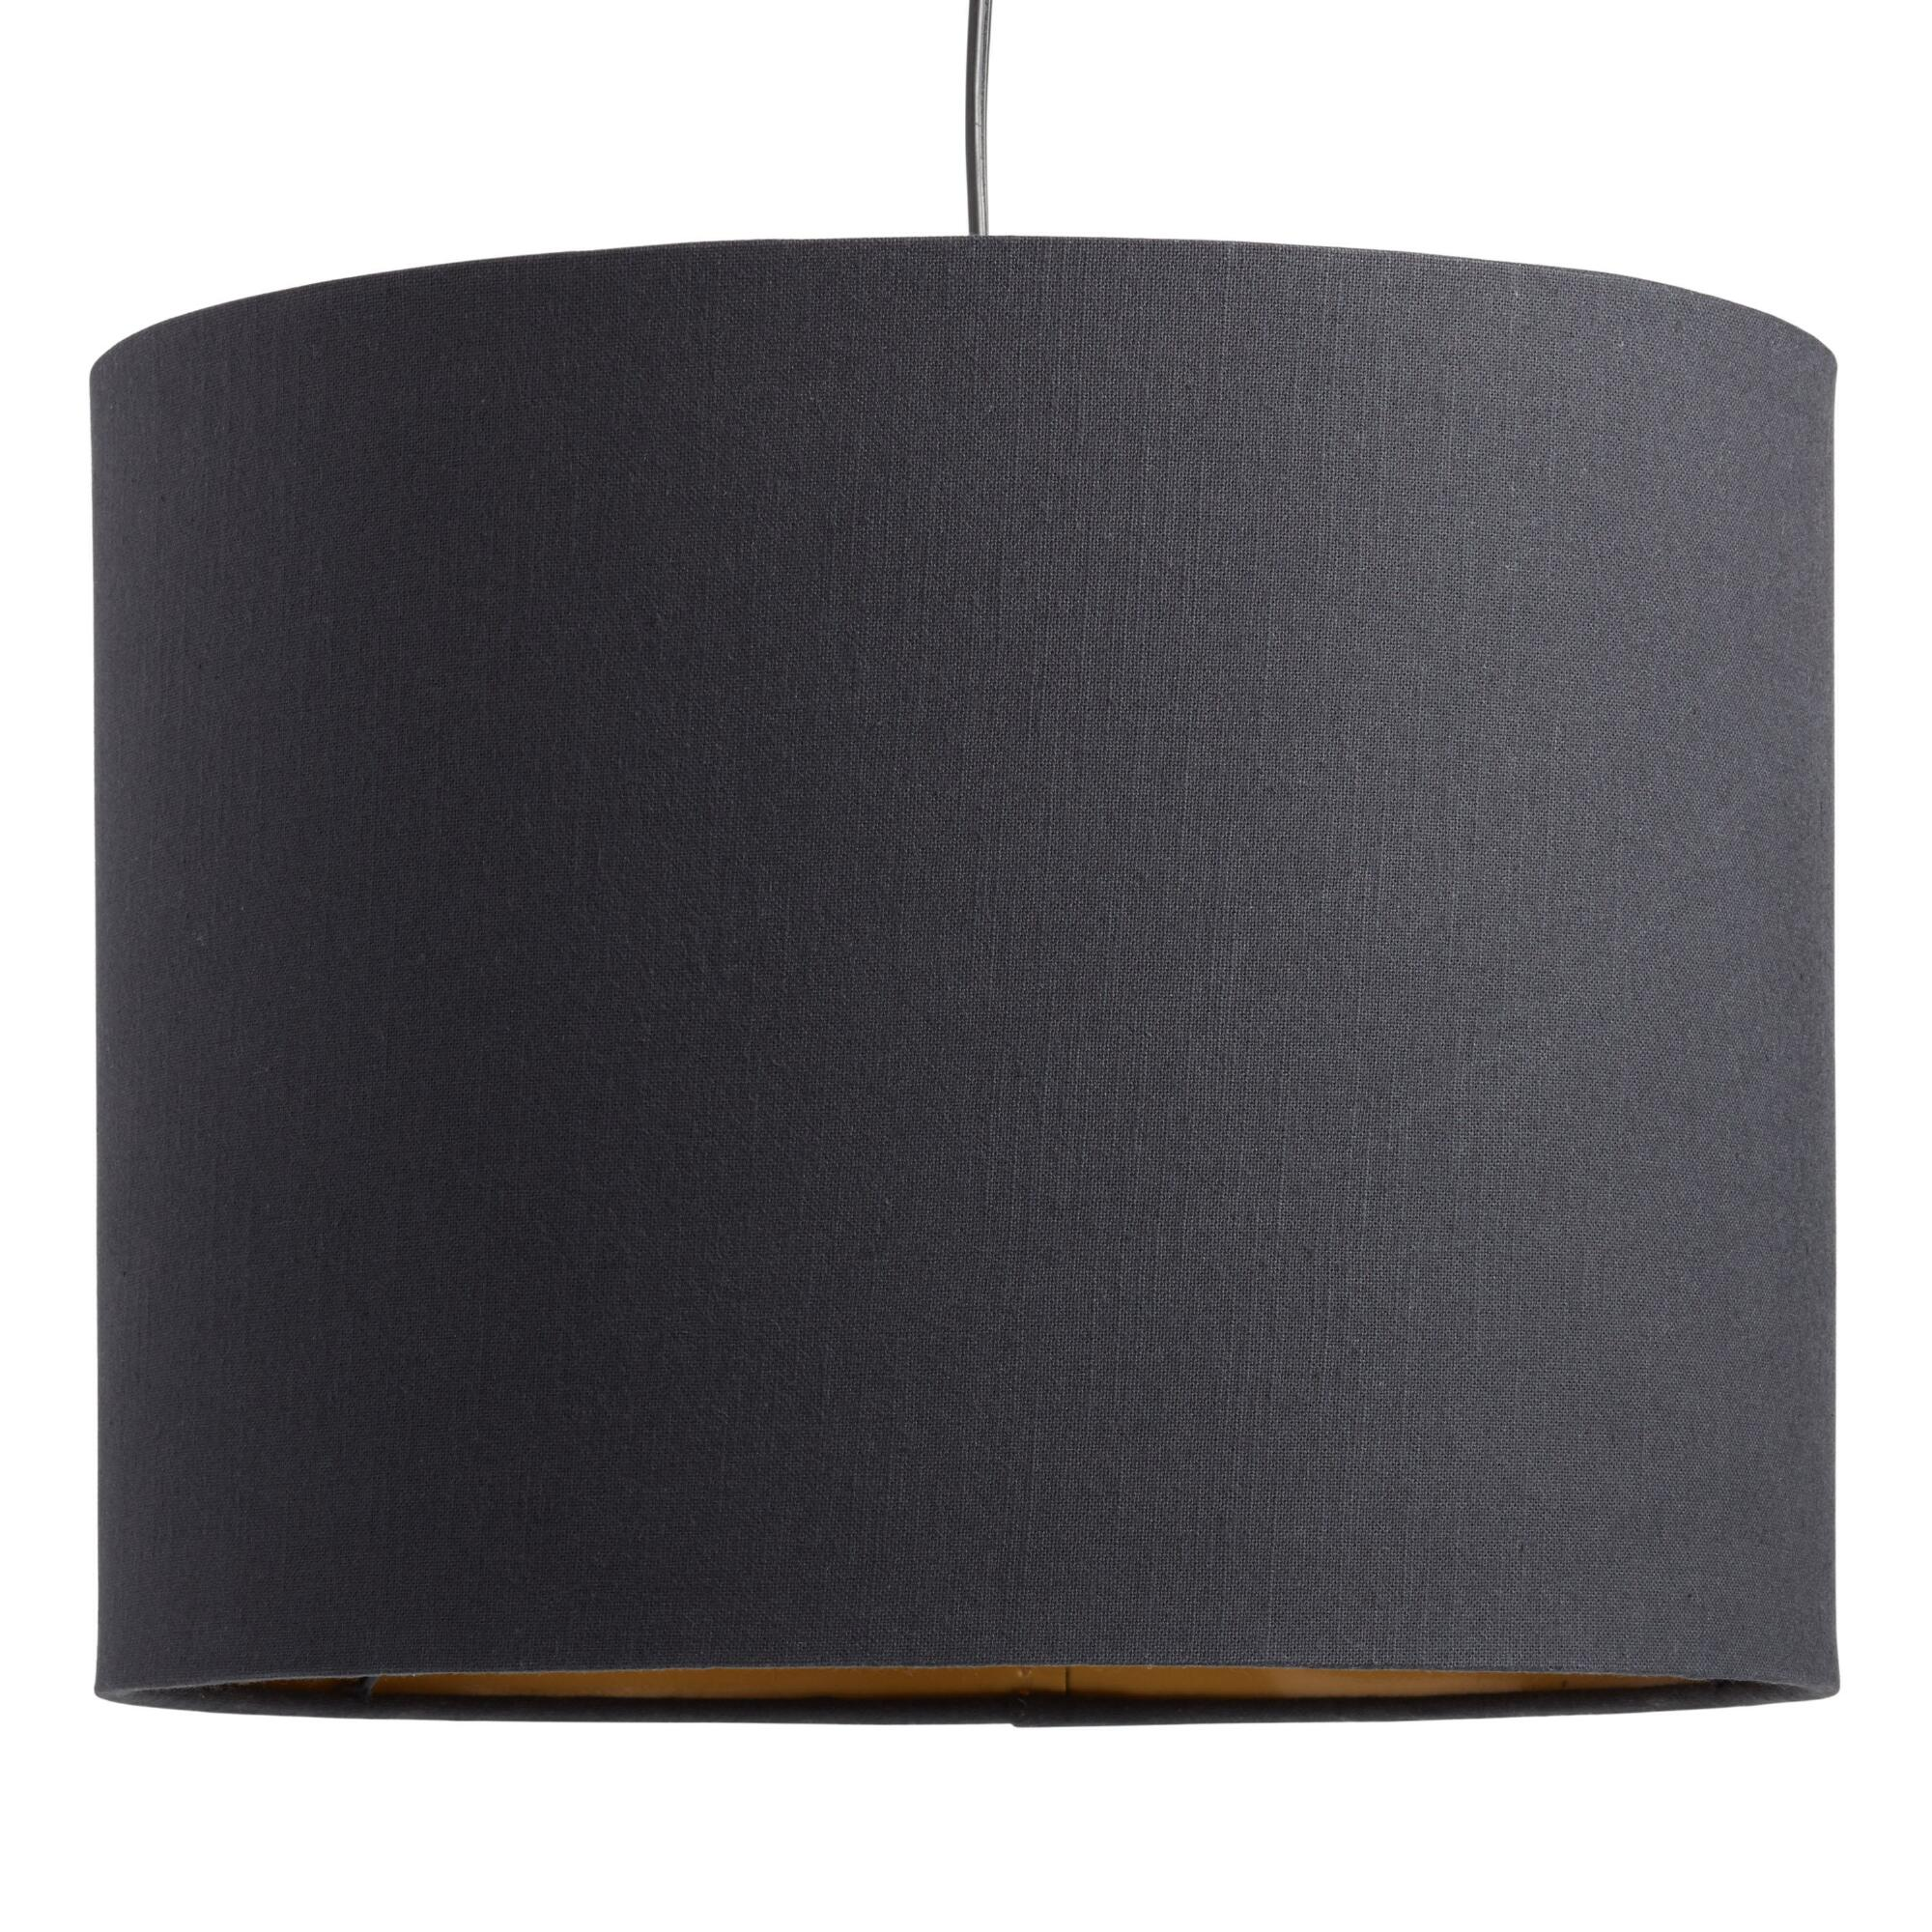 Black Linen Drum Table Lamp Shade by World Market